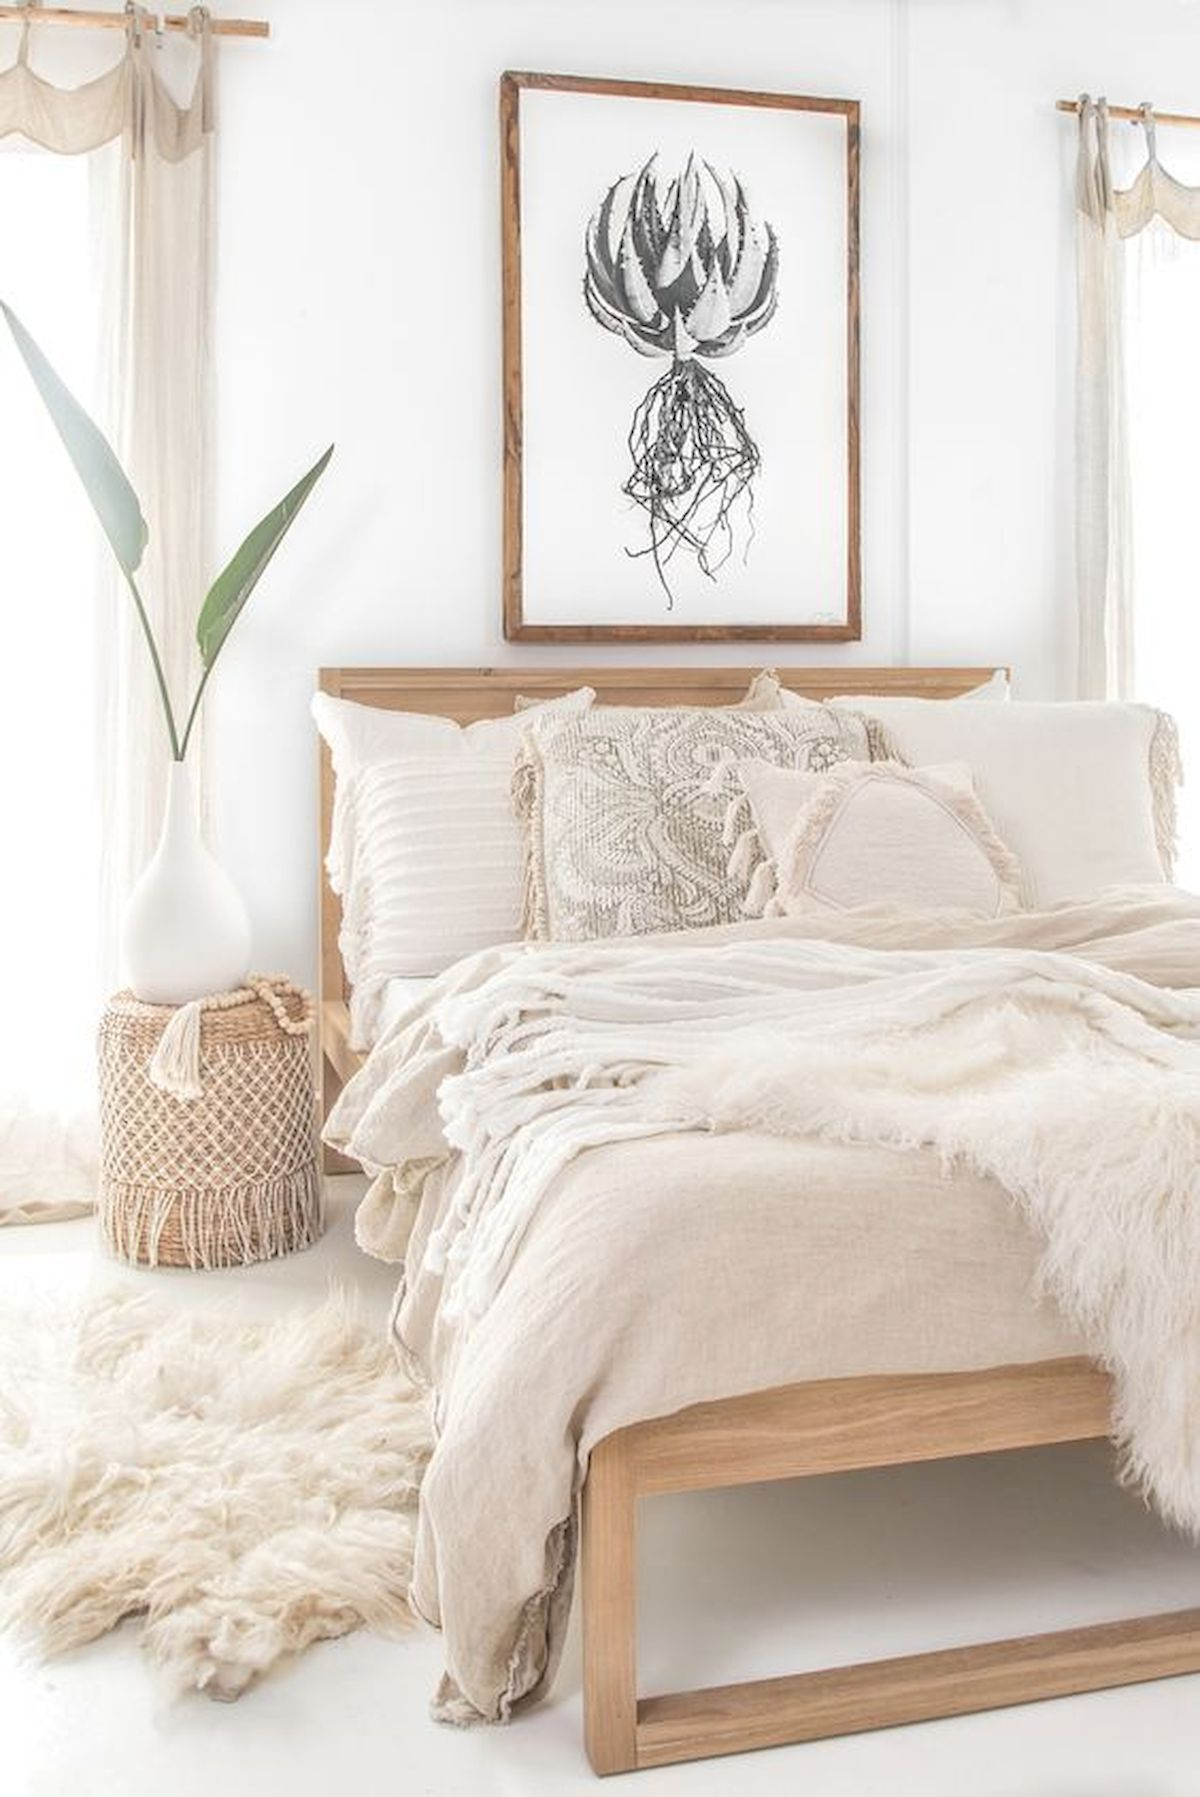 60 Adorable Modern Farmhouse Bedroom Design Ideas and Decor #modernfarmhousebedroom I know you get used to seeing homes with modern interiors because it is the trend these days but there are still homes that also use other interior styles as well from contemporary, Asian, eclectic, cottage, rustic, farmhouse and many… Continue Reading → #rusticfarmhouse